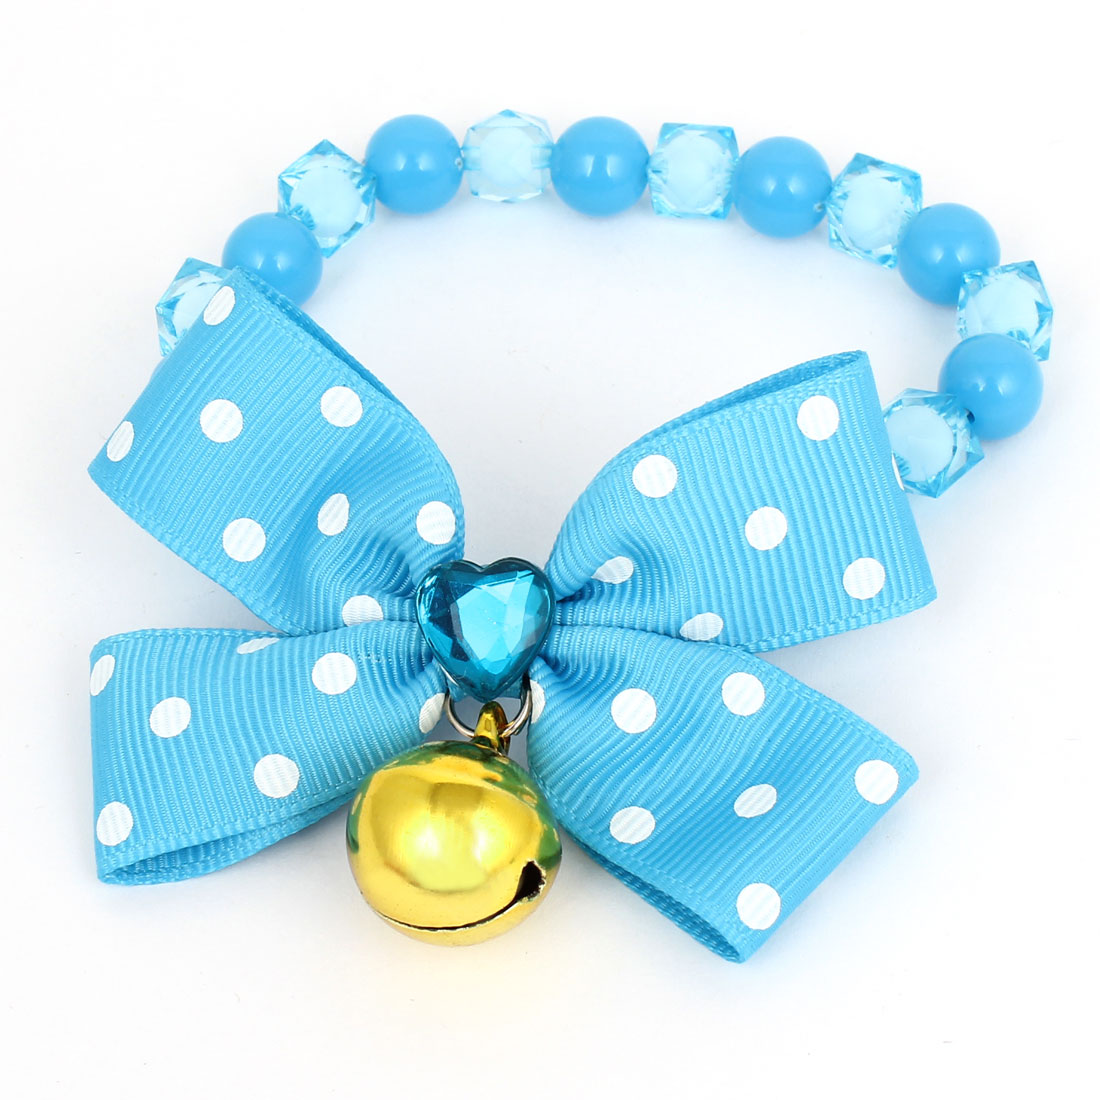 Metal Bell Pendant Bowtie Accent Pet Dog Plastic Beads Collar Necklace Blue M